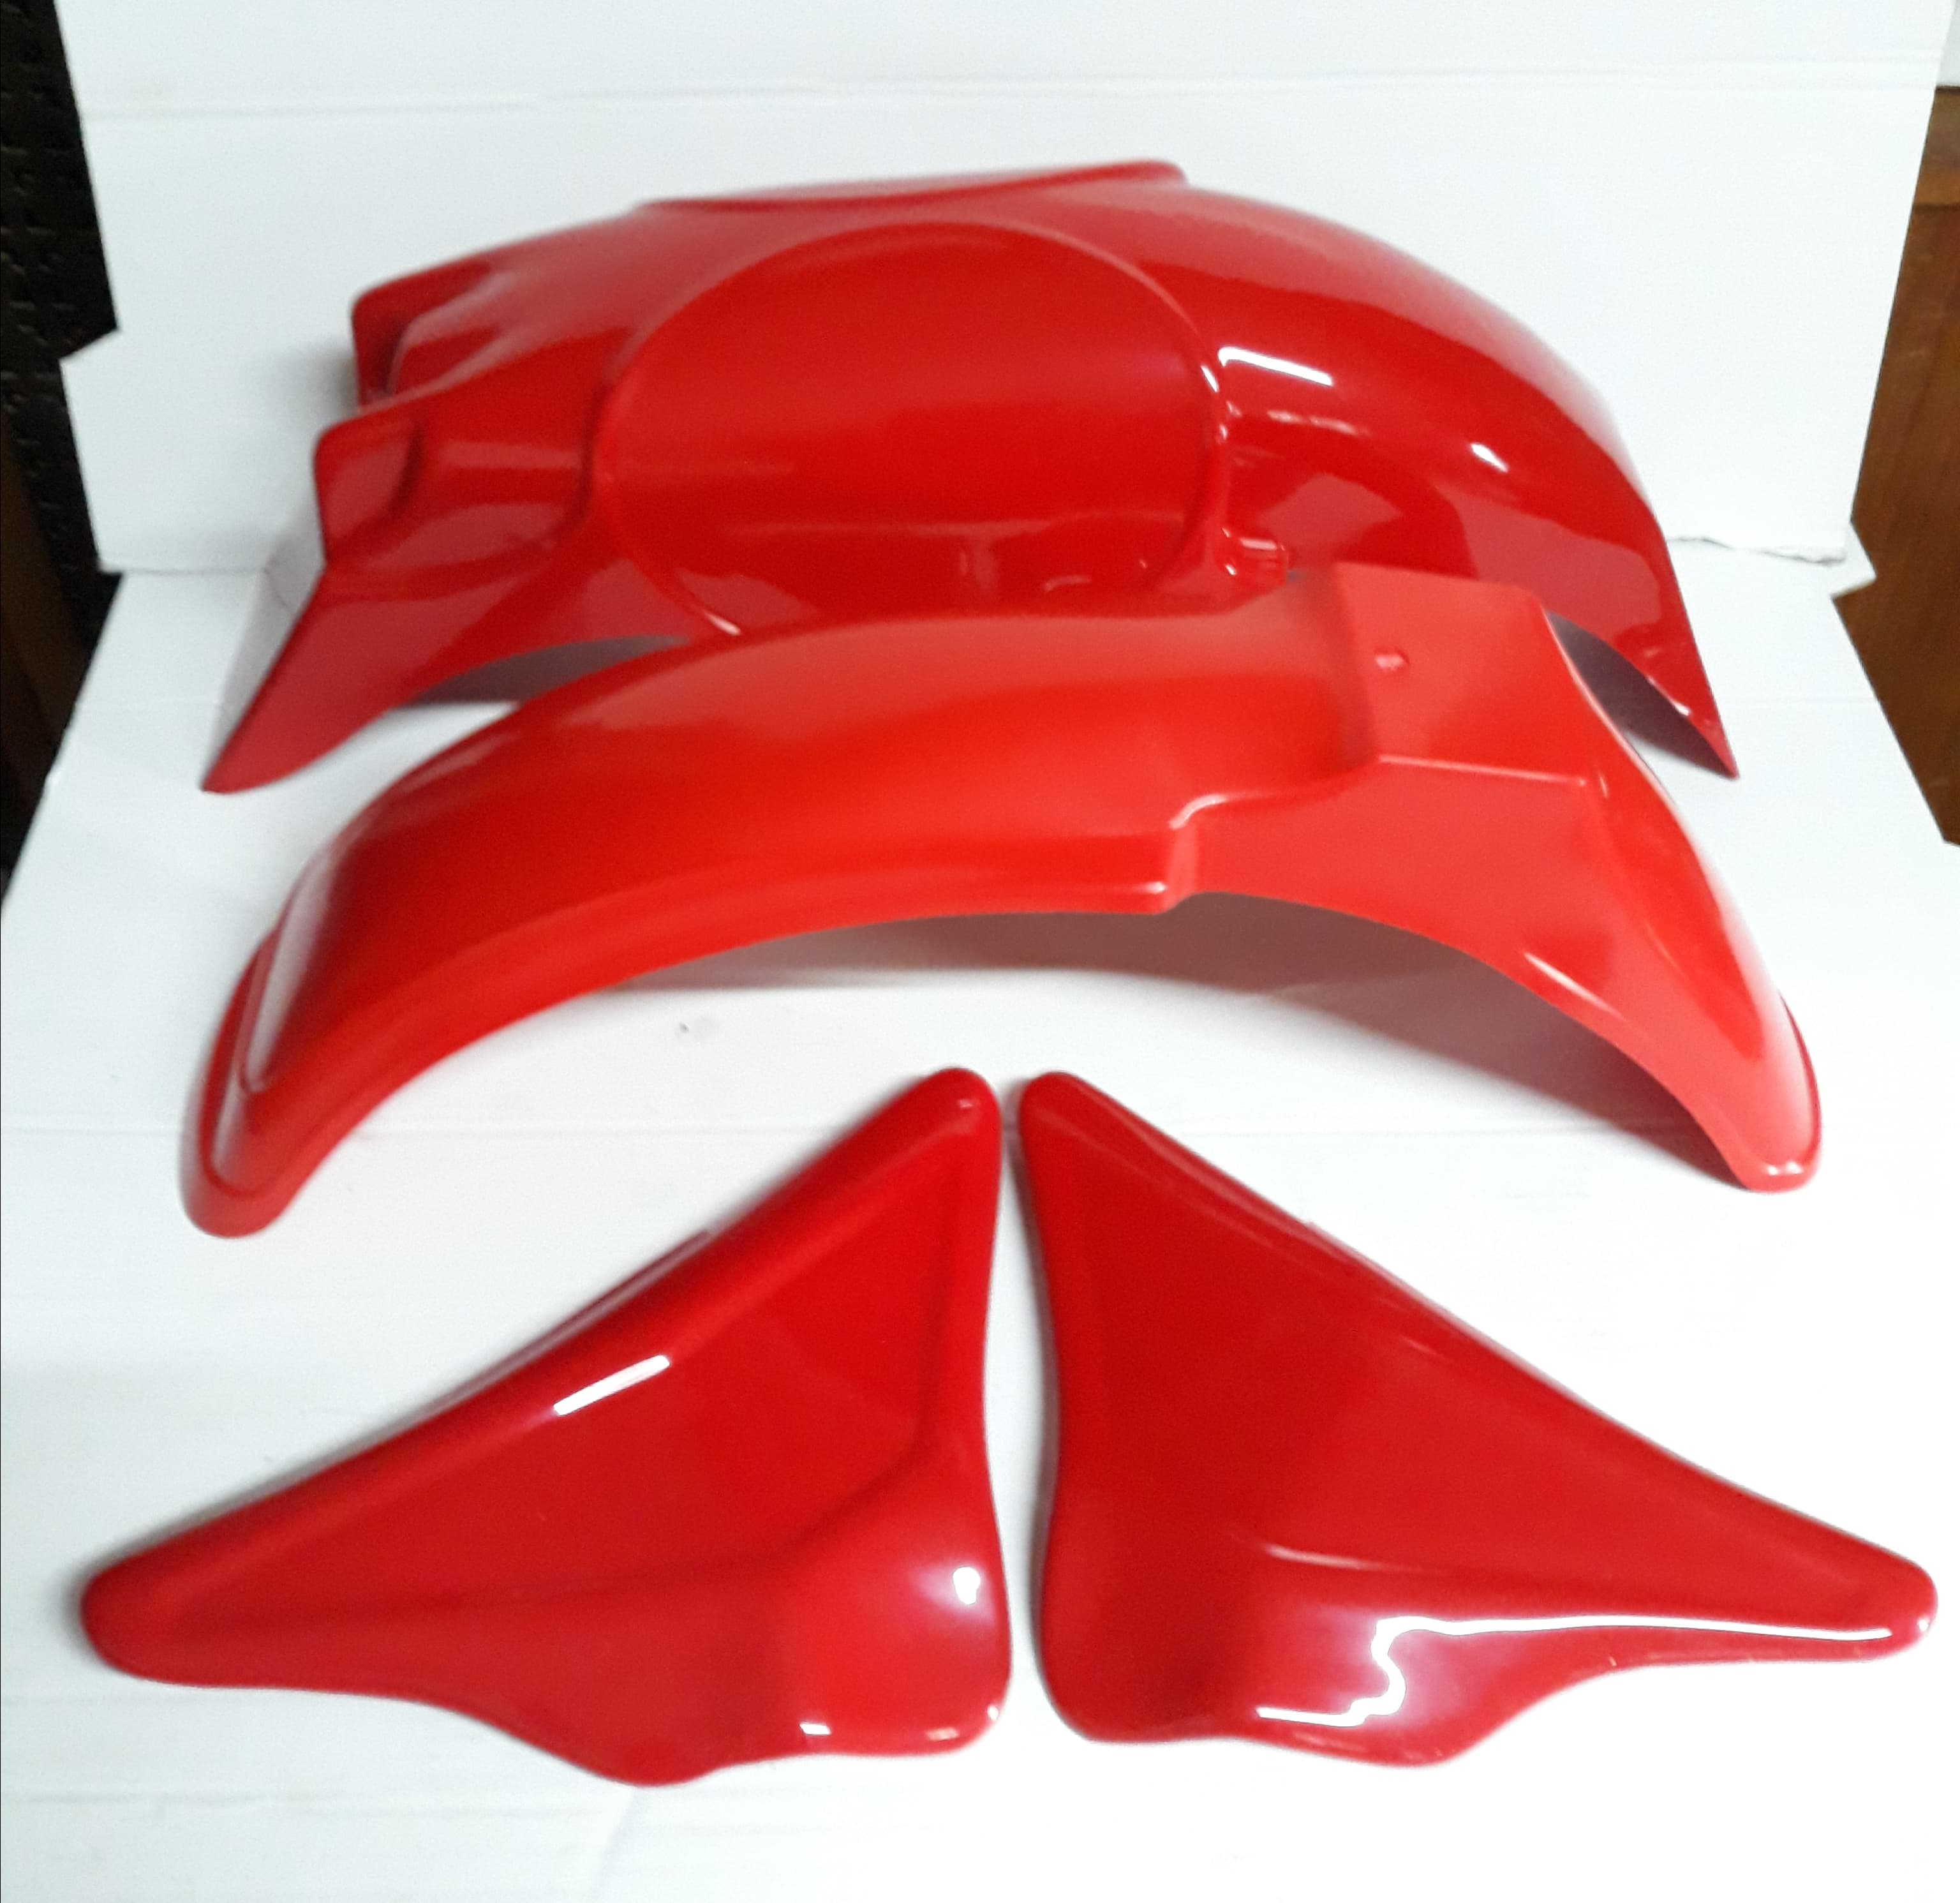 Kit plastiche beta gs 250 1980-1981